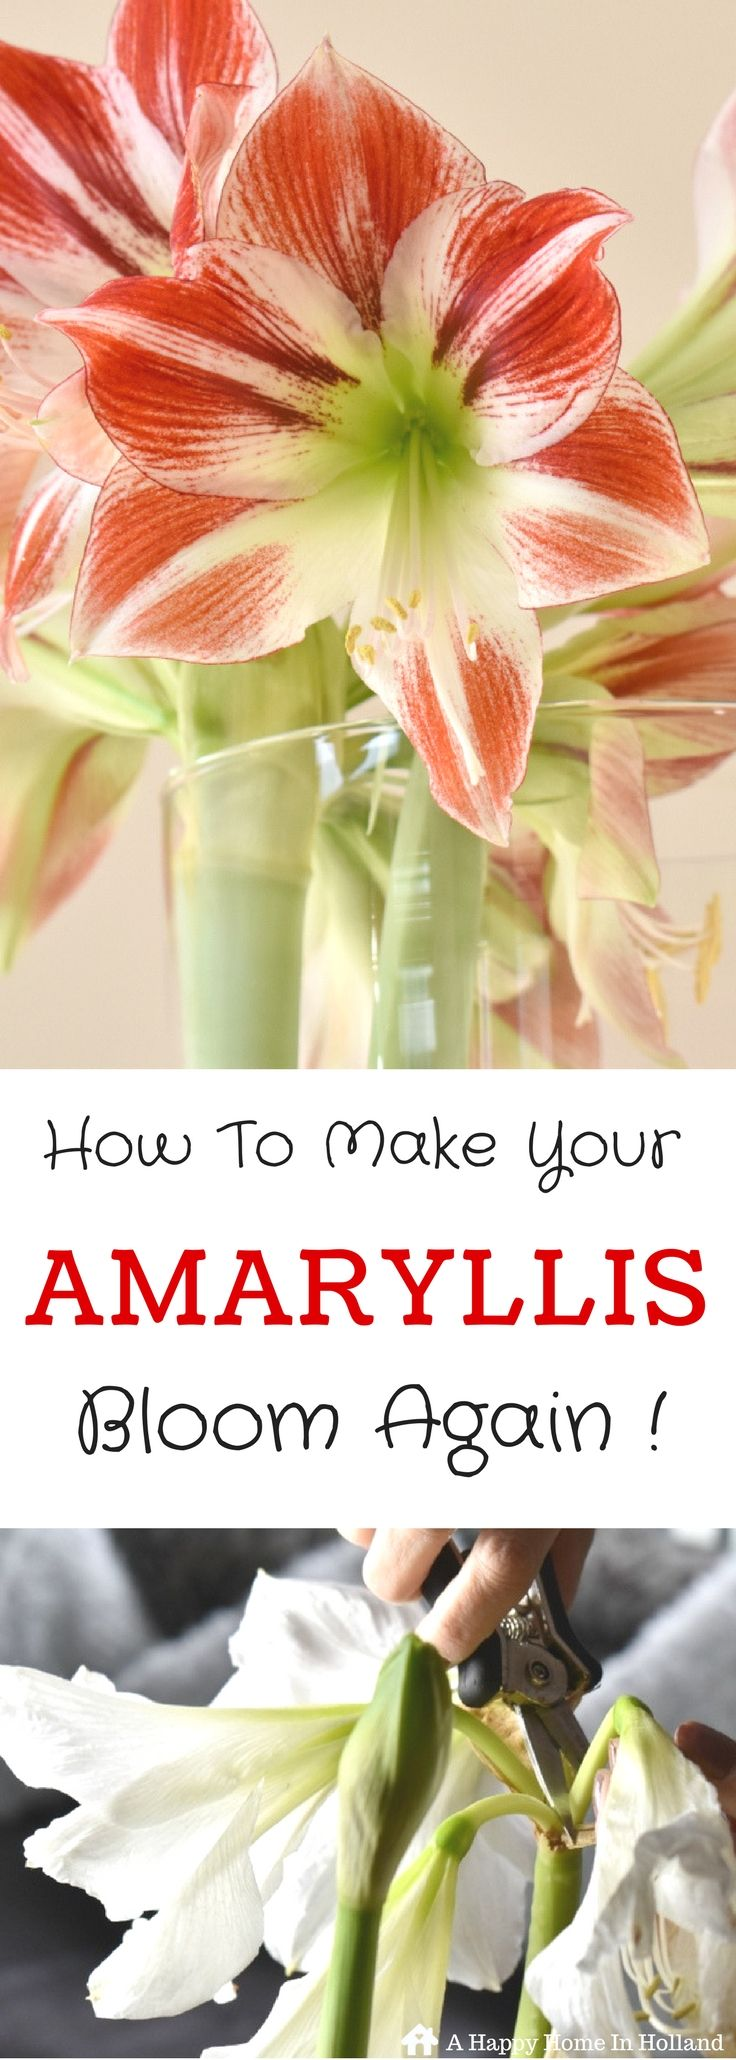 How To Get An Amaryllis To Flower Again Amaryllis Plant Amaryllis Bulbs Plants